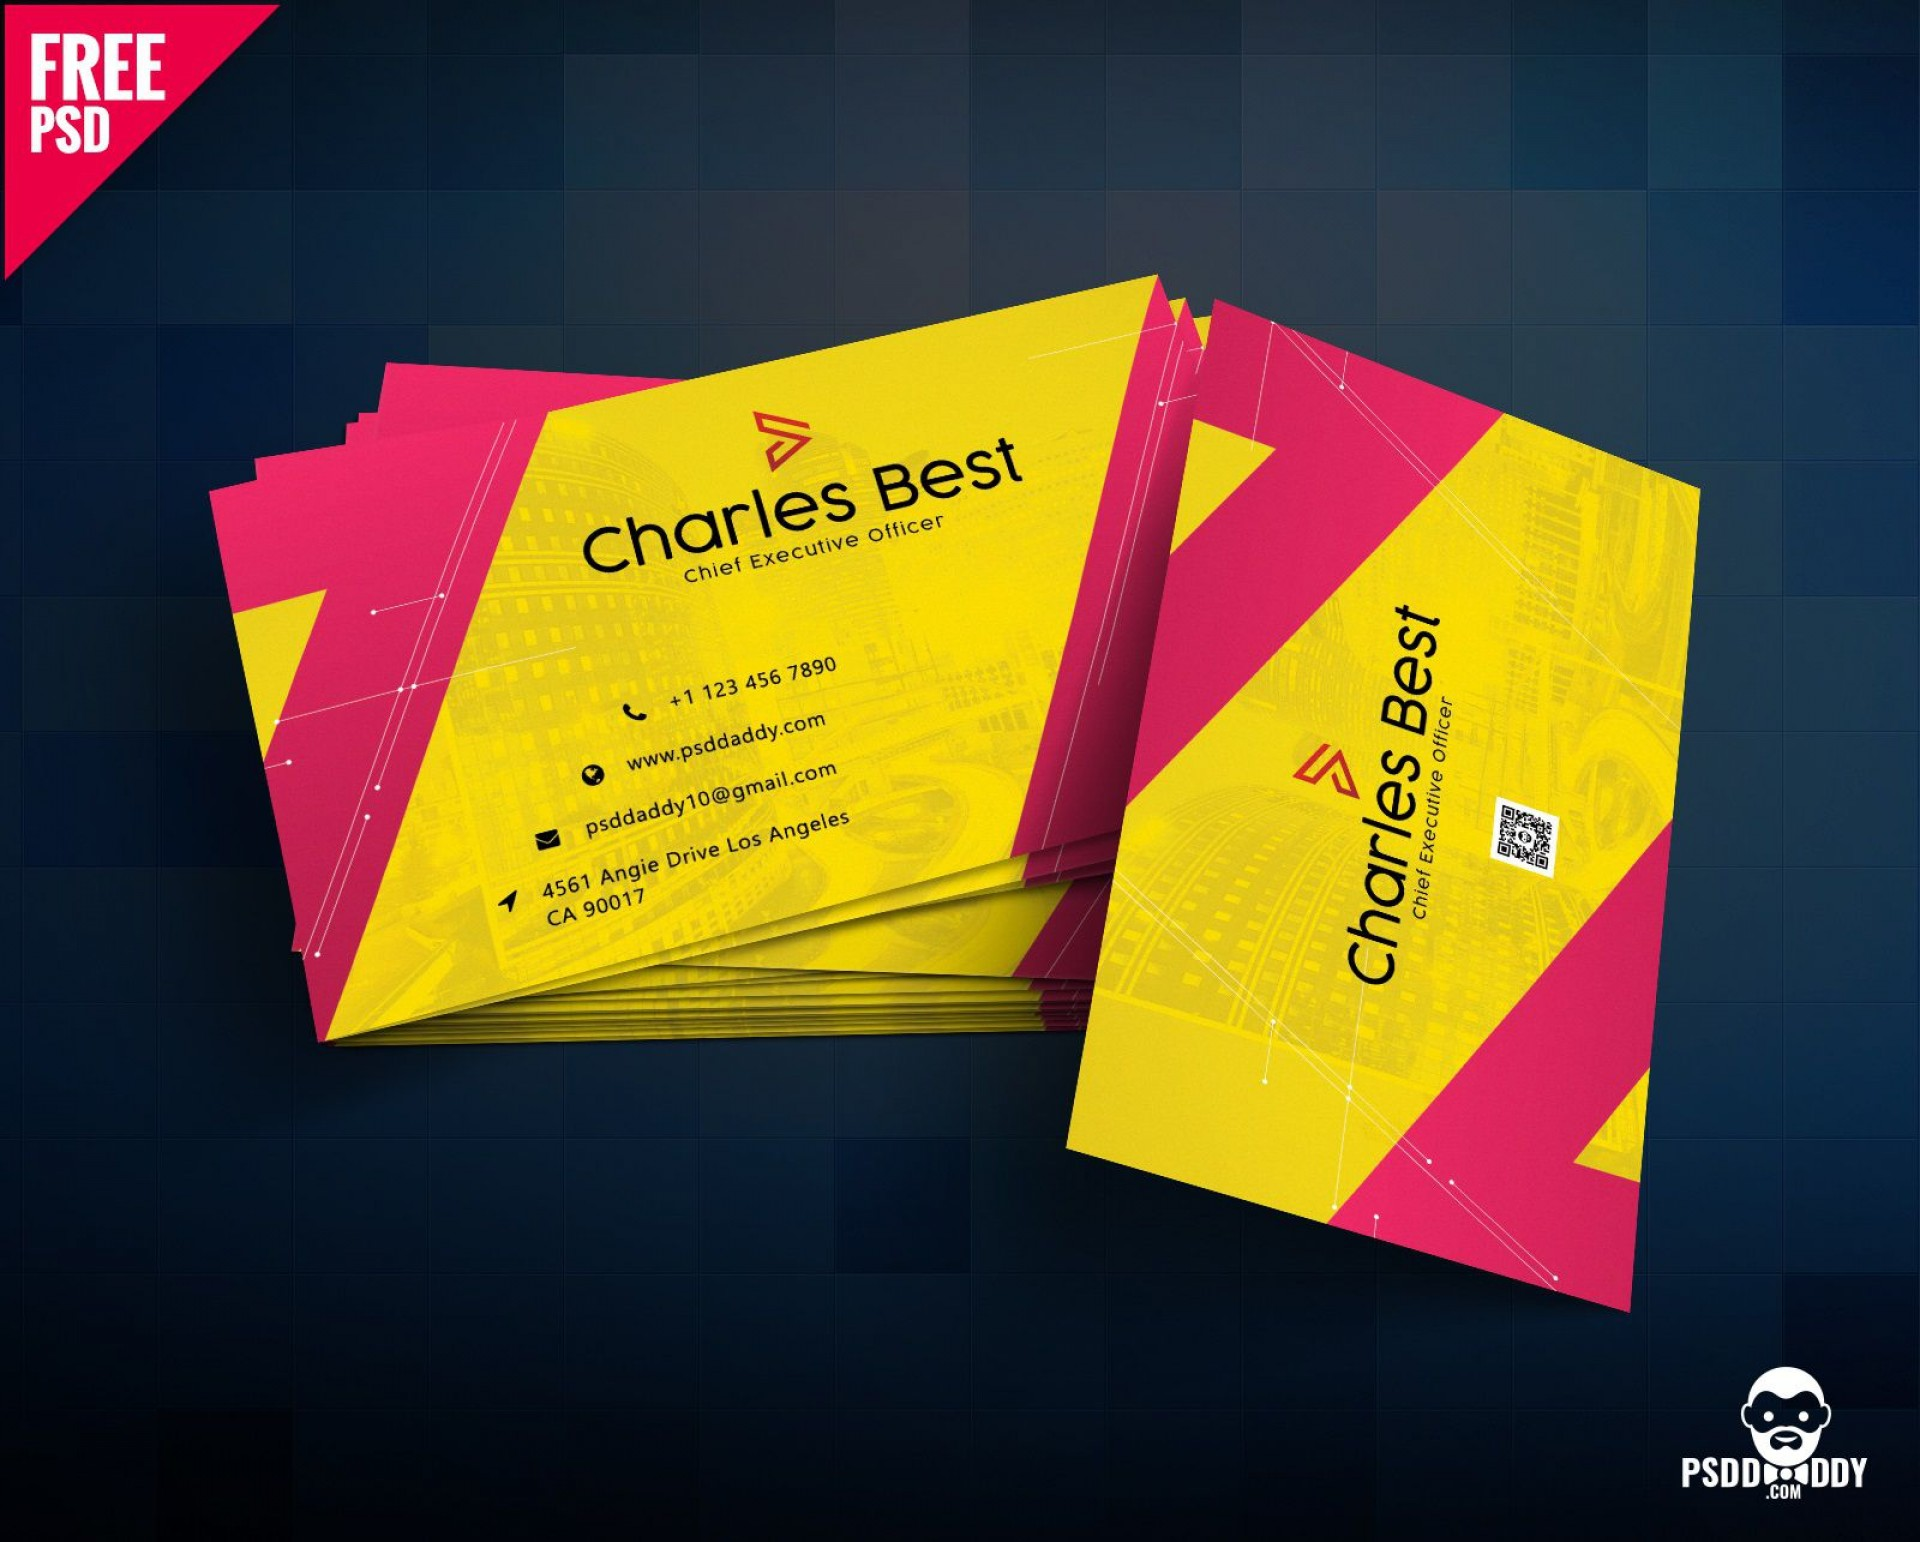 006 Unforgettable Free Adobe Photoshop Busines Card Template Highest Quality  Templates Download1920